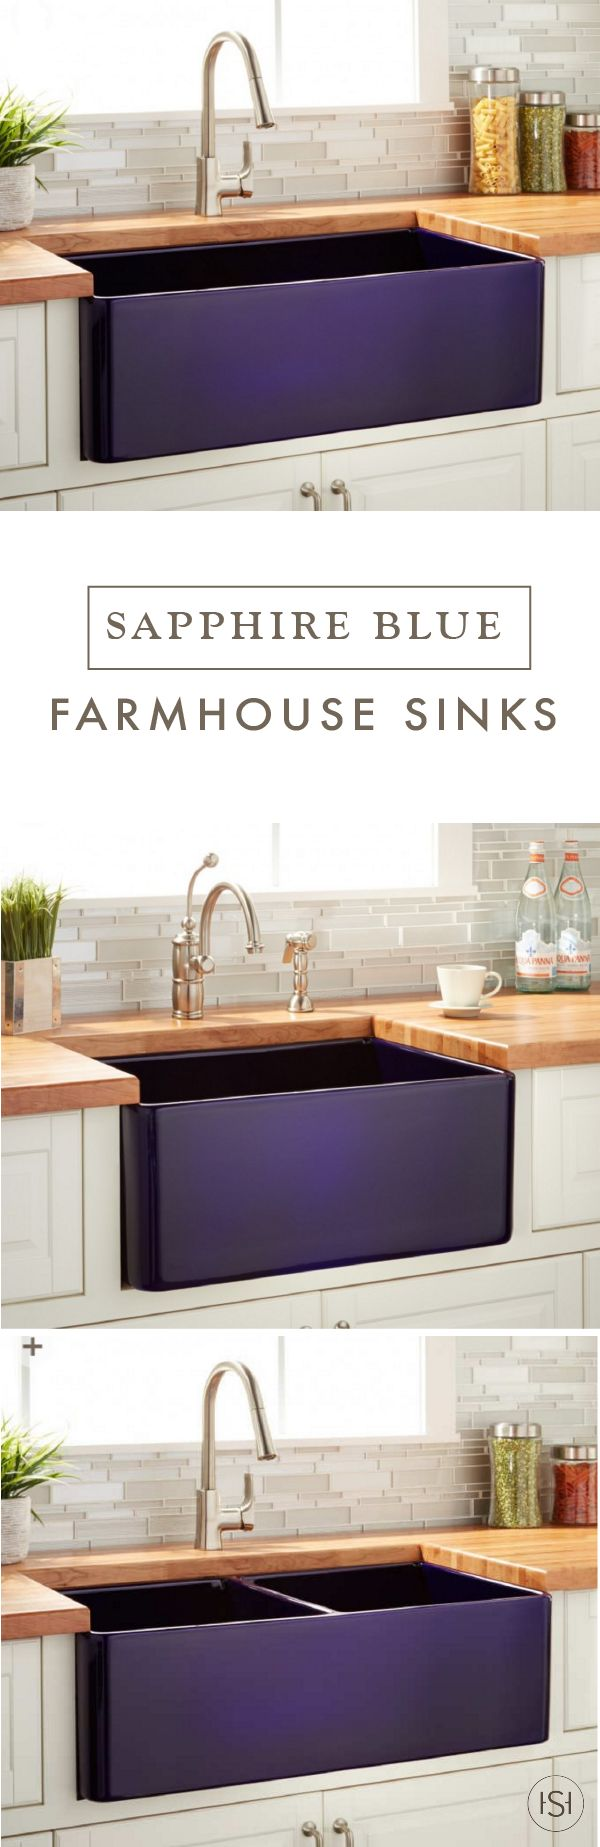 this collection of sapphire blue reinhard fireclay farmhouse sinks will play doubleduty in your kitchen practical kitchen essential and